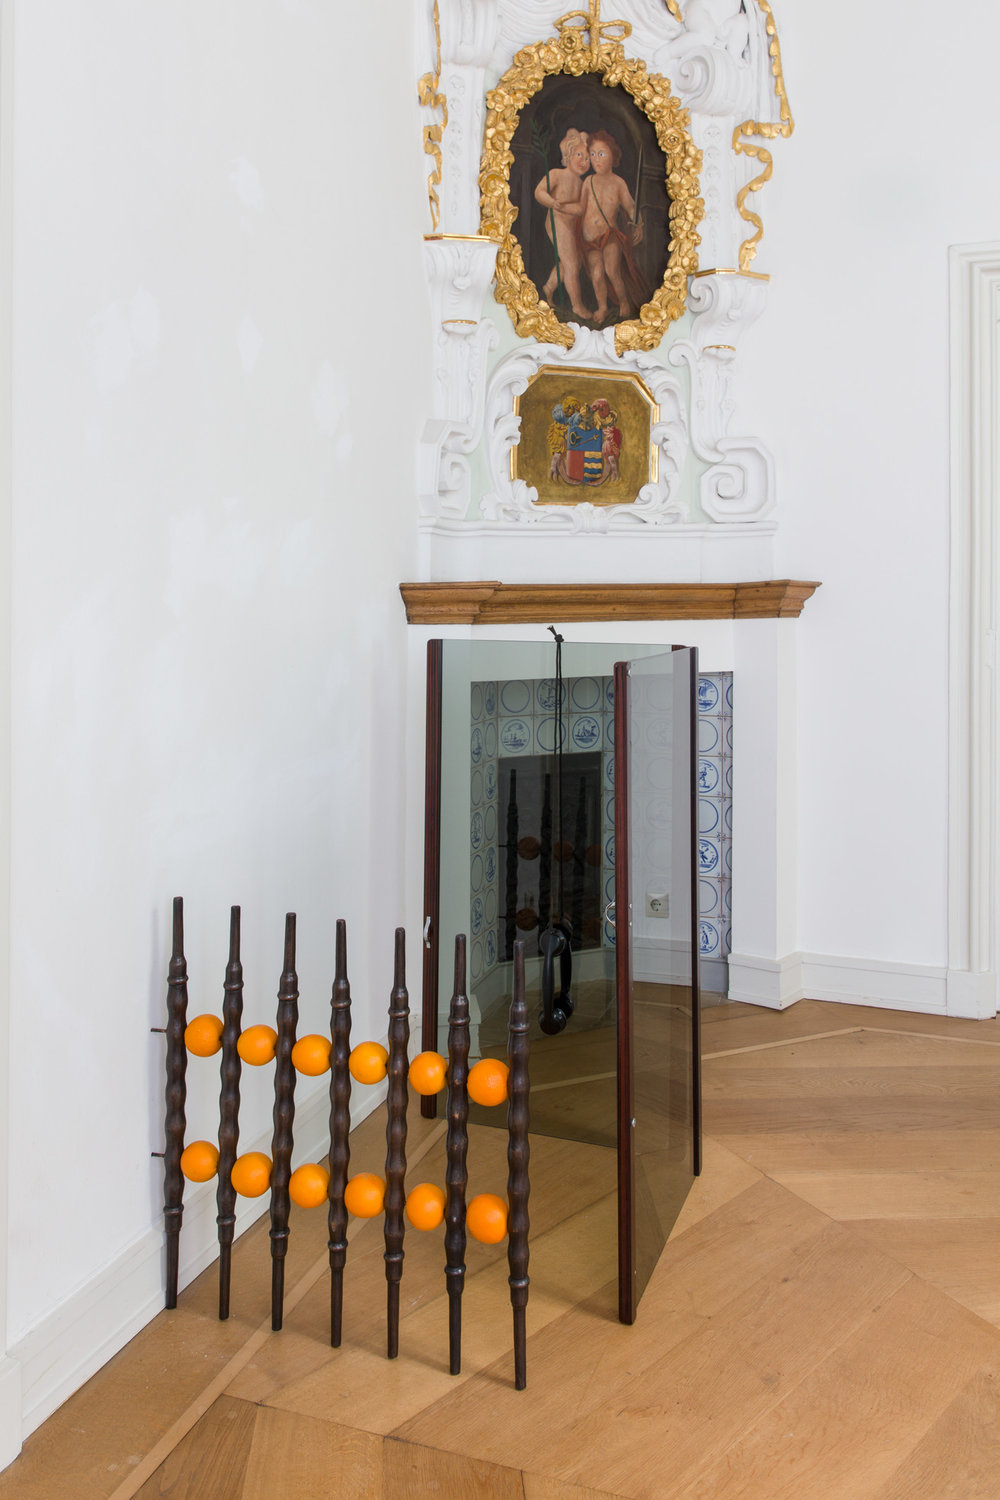 KNRW - 21. - Diango Hernandez, if an orange, if your voice, 2011, KG 3822, Installationsansicht 2017 (c) The Artist - Foto Carl Brunn.jpg